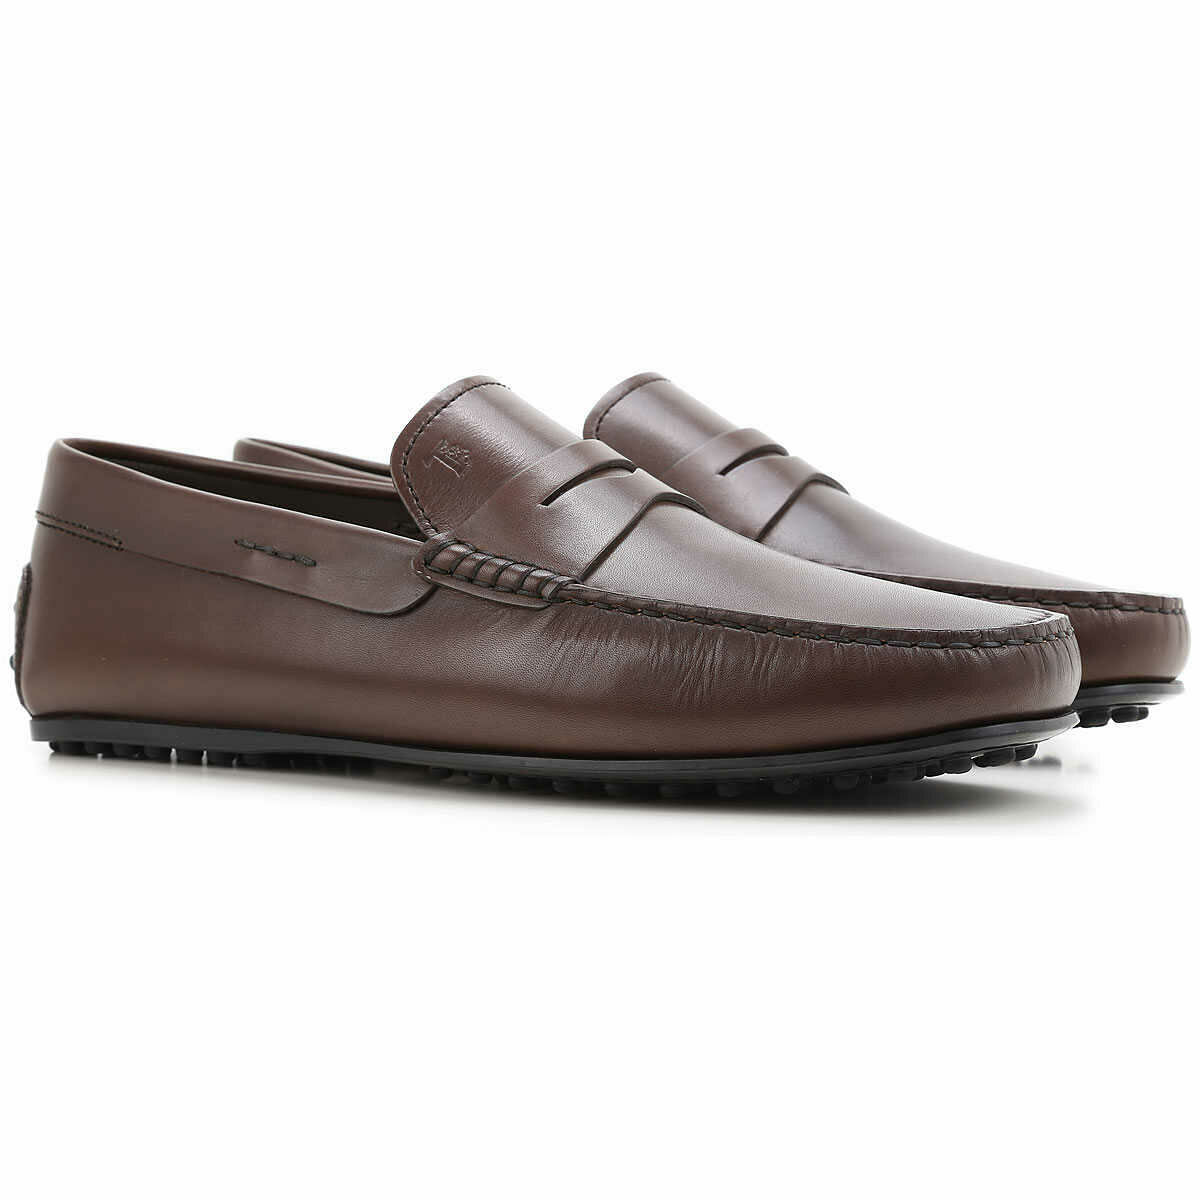 Denmark Influencer Shoes Styles Inspirations Outfits - SHOES